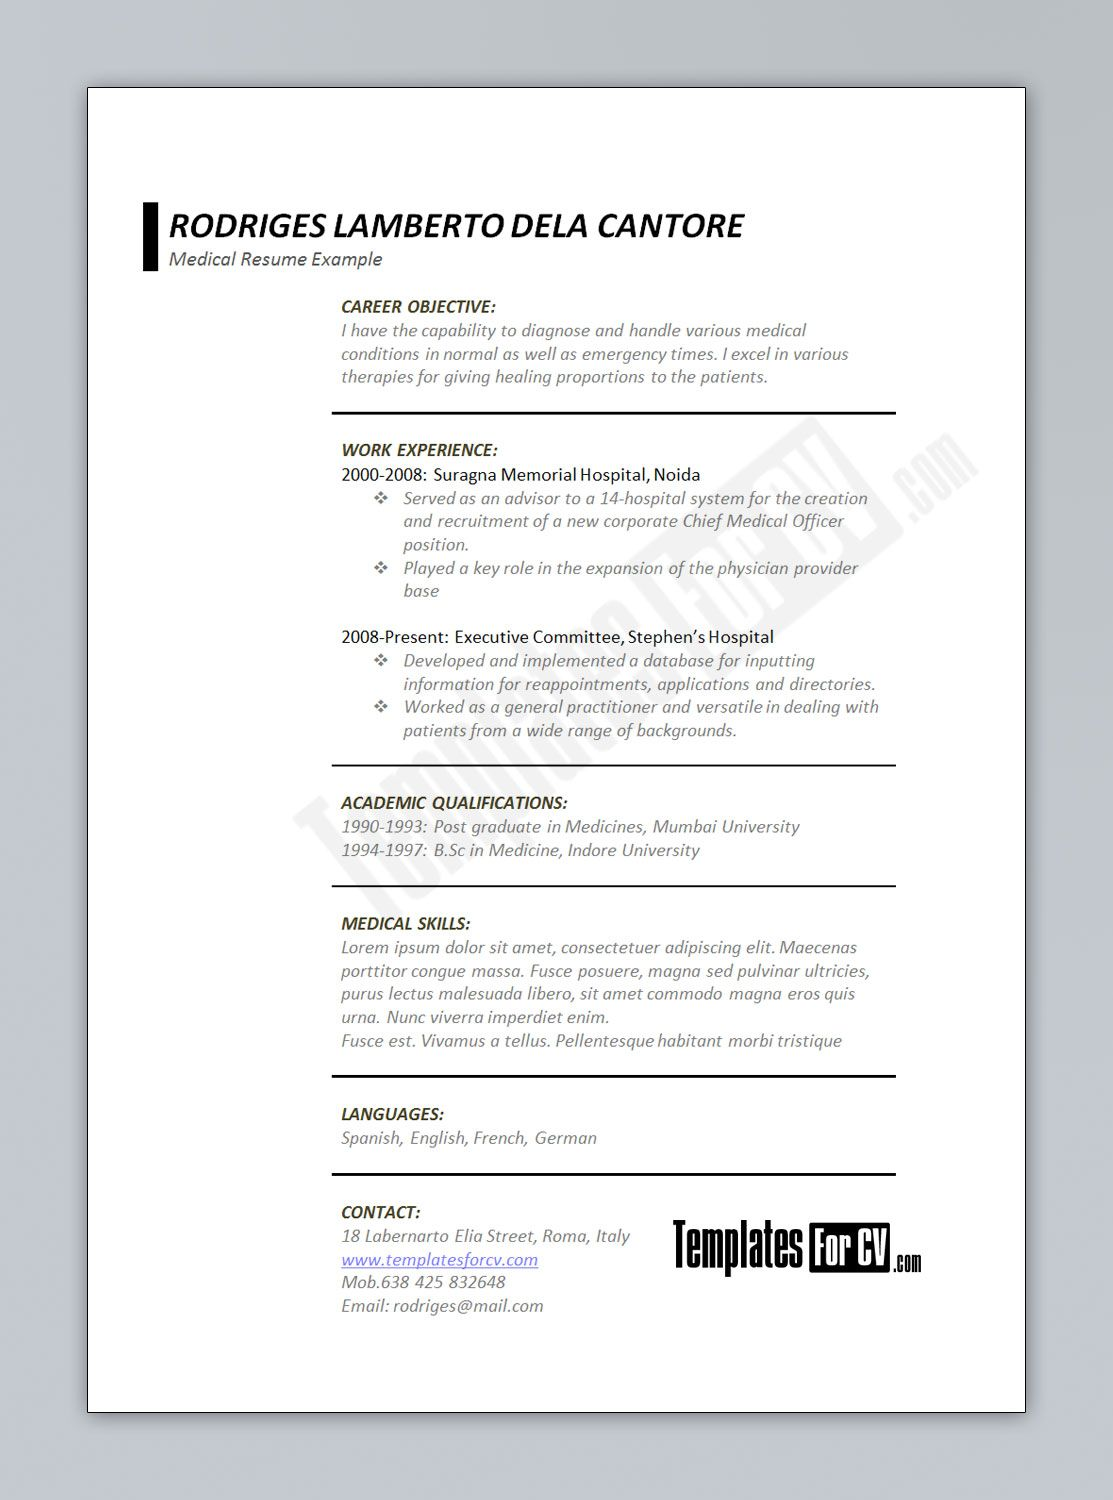 Medical CV template medical CV template CV Templates